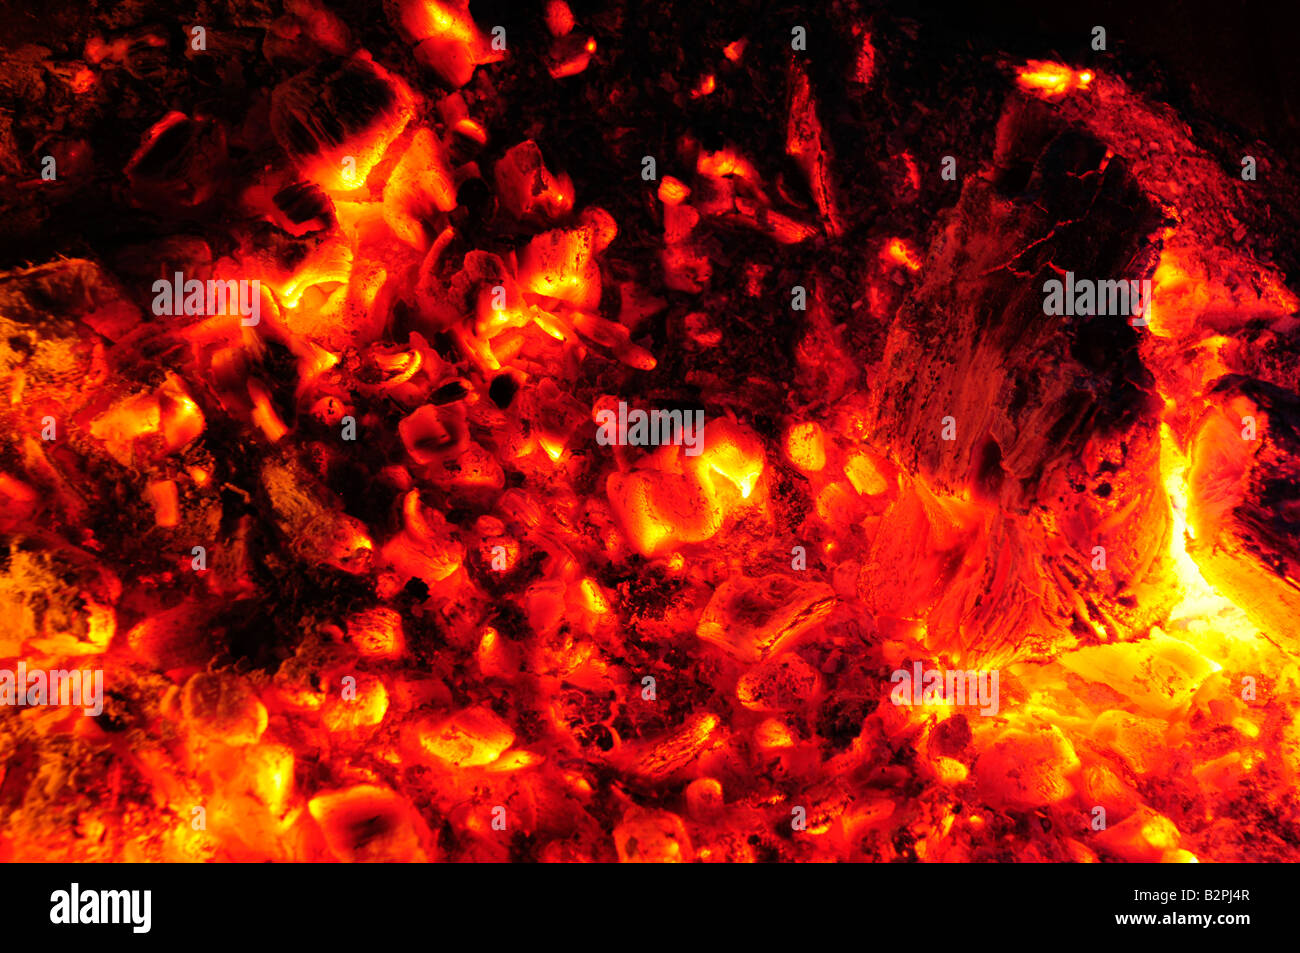 Glowing embers of a fire turning molten - Stock Image